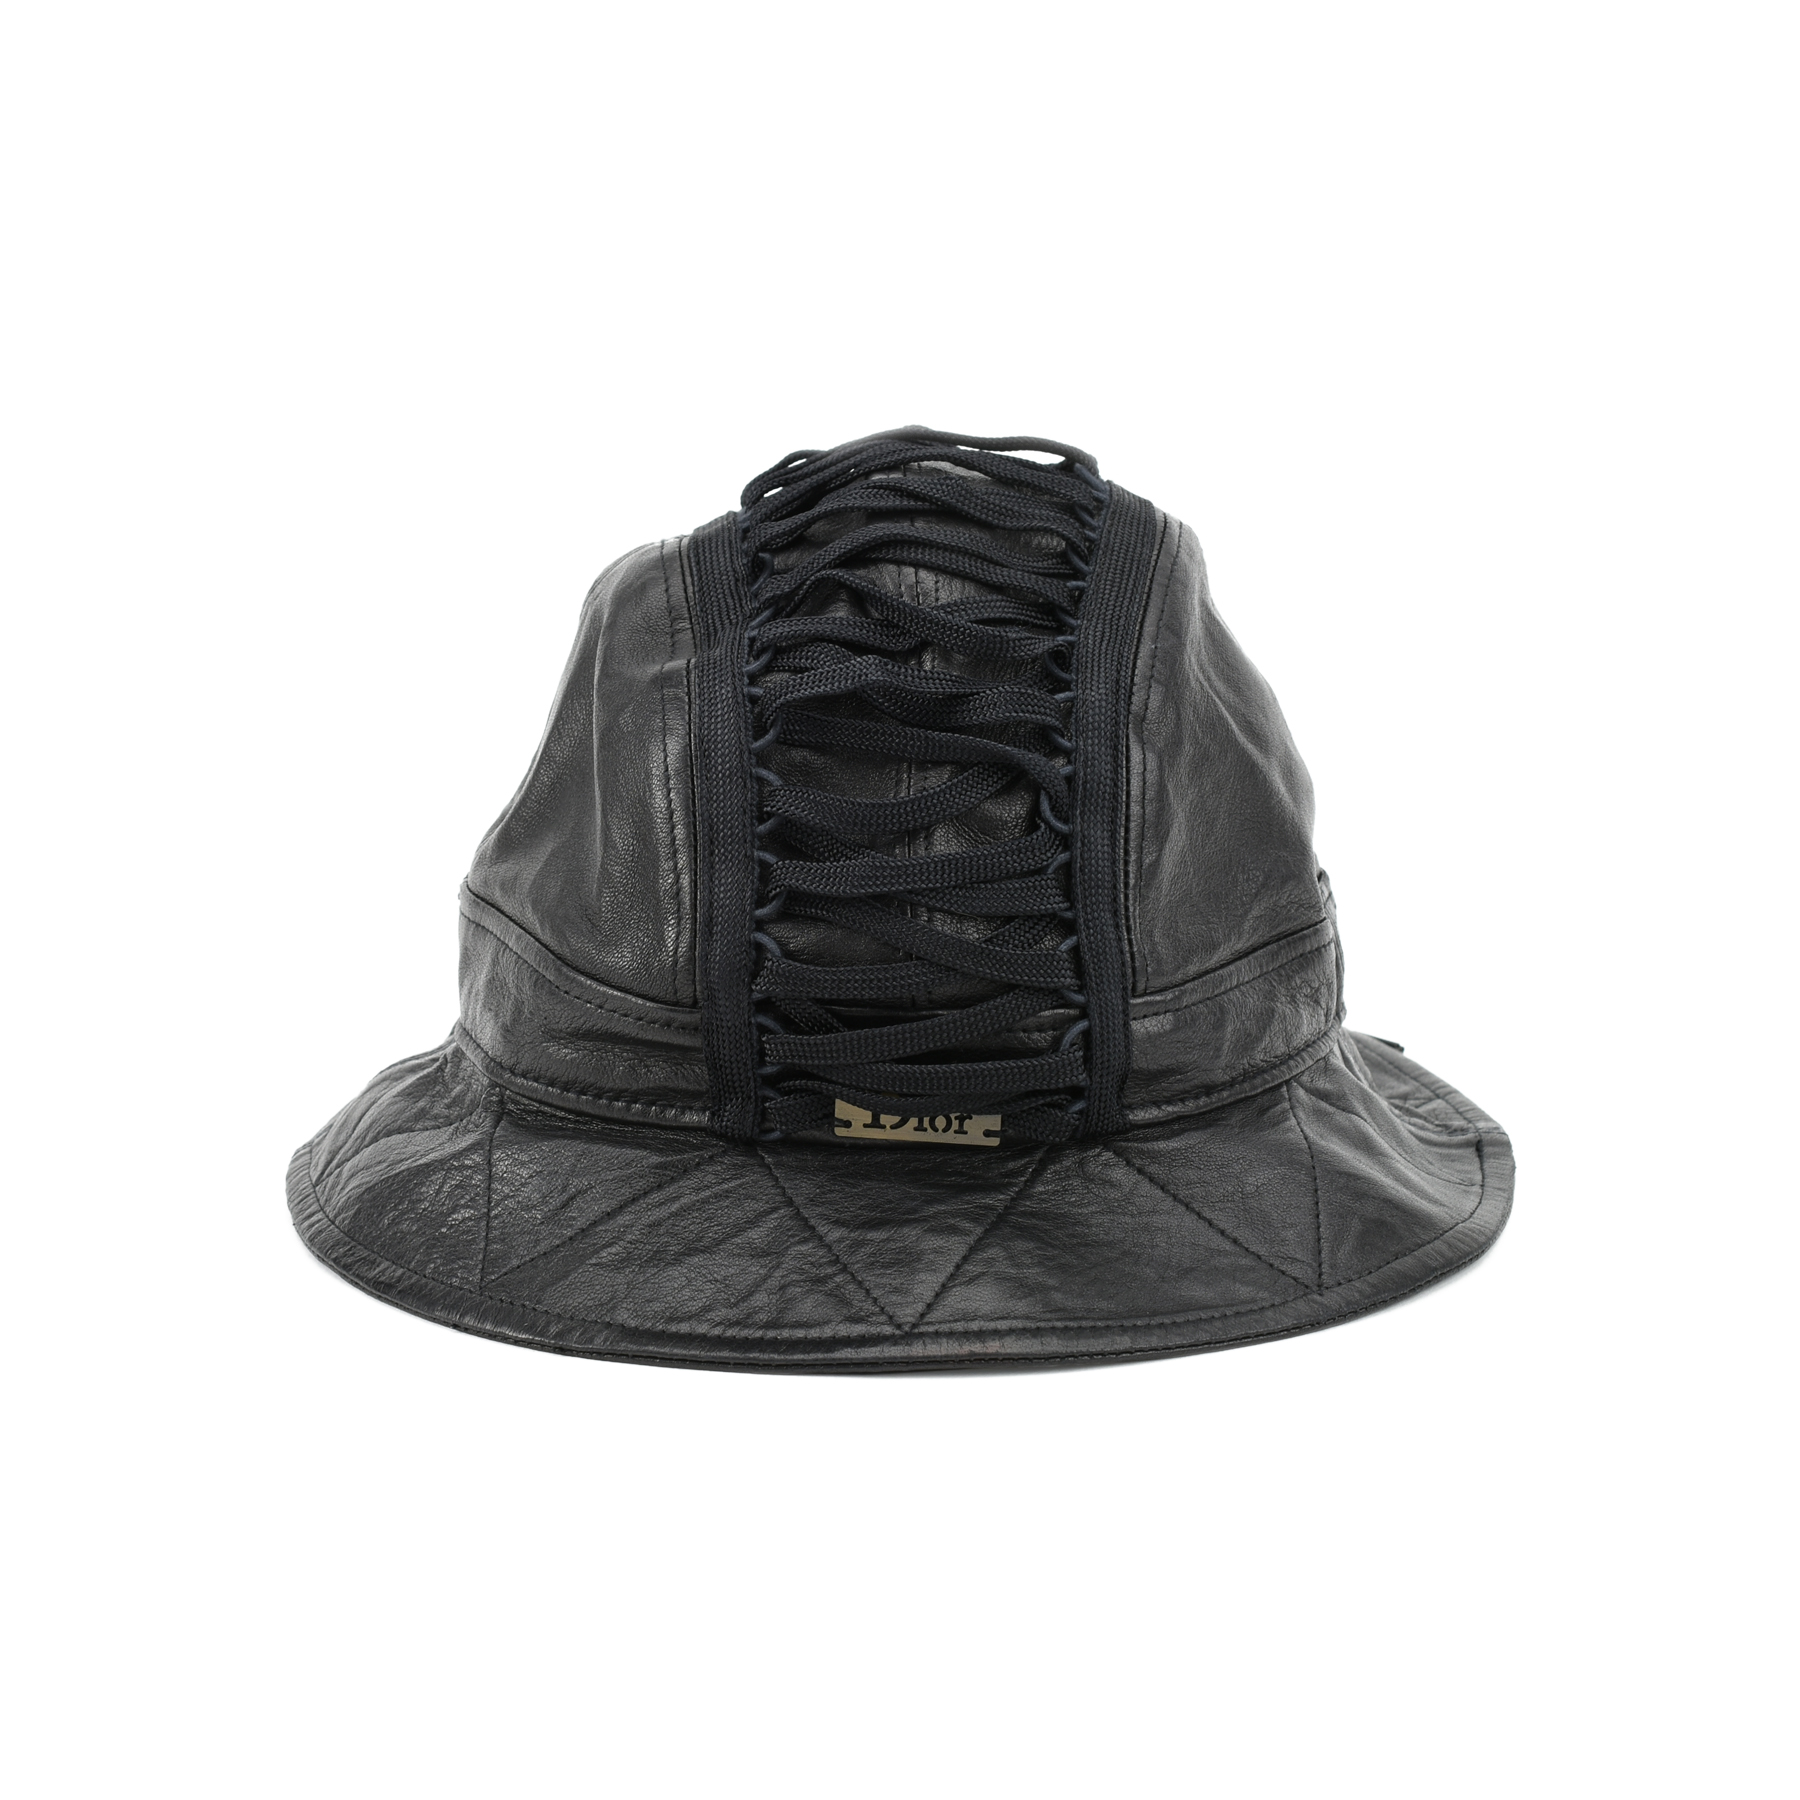 Authentic Pre Owned Dior Leather Bucket Hat (PSS-200-00840)  f1c5017e52c